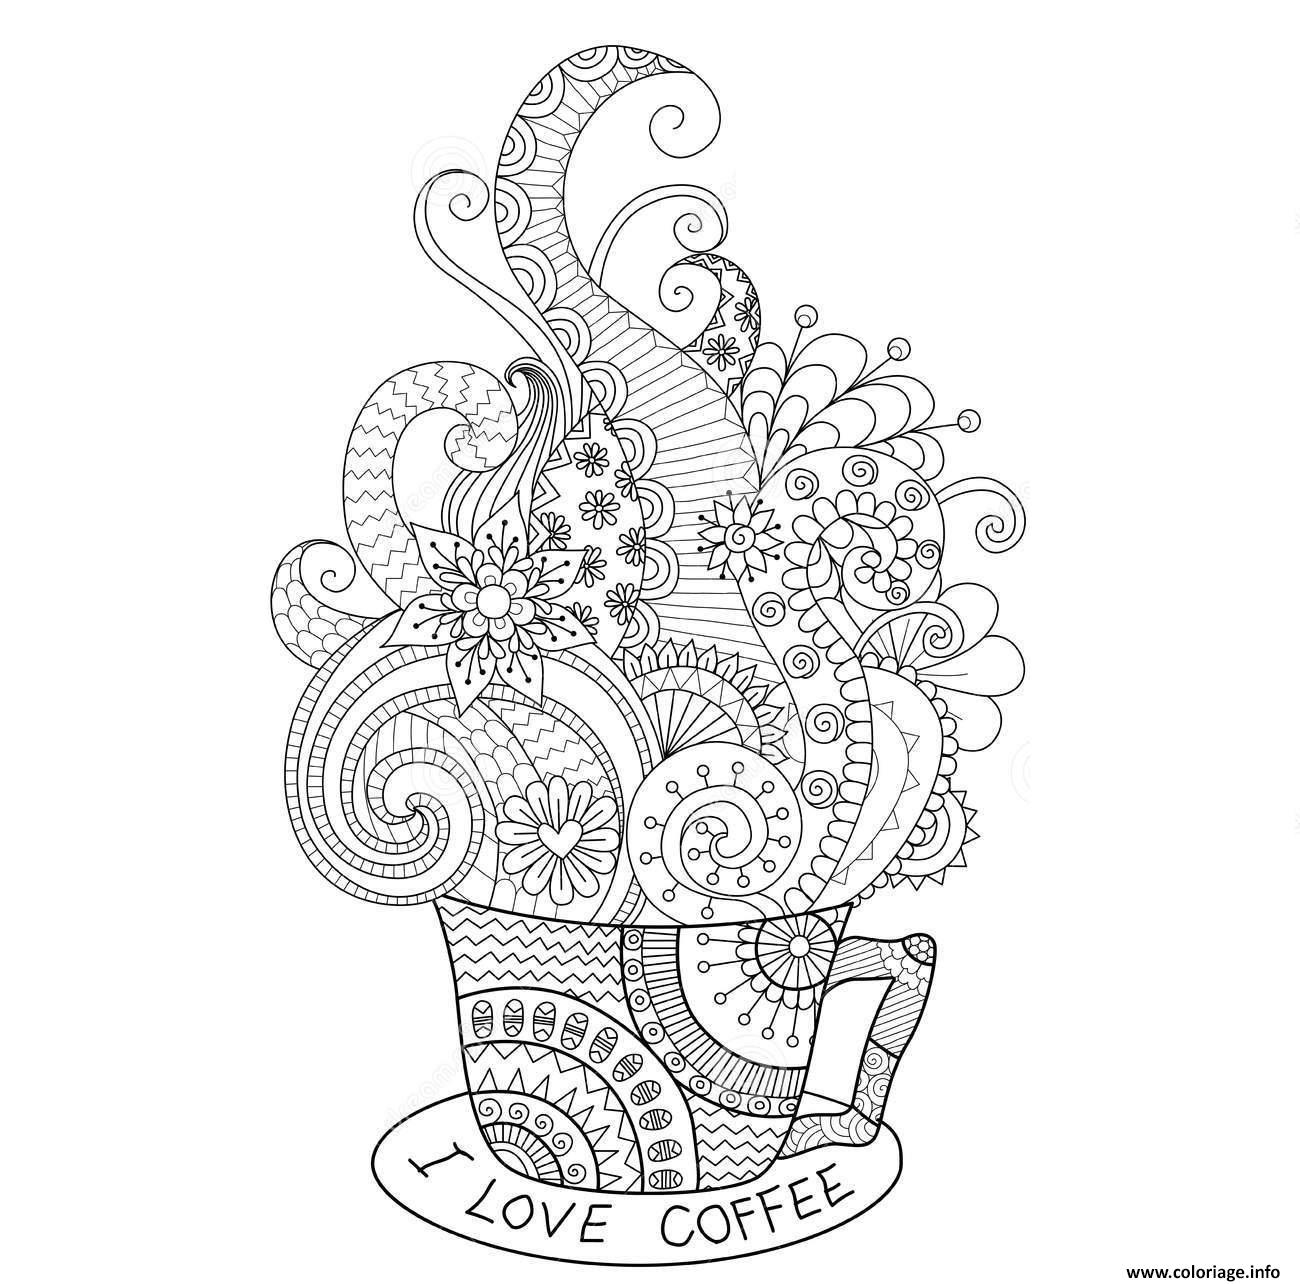 Dessin cup hot coffee zentangle design adulte Coloriage Gratuit à Imprimer